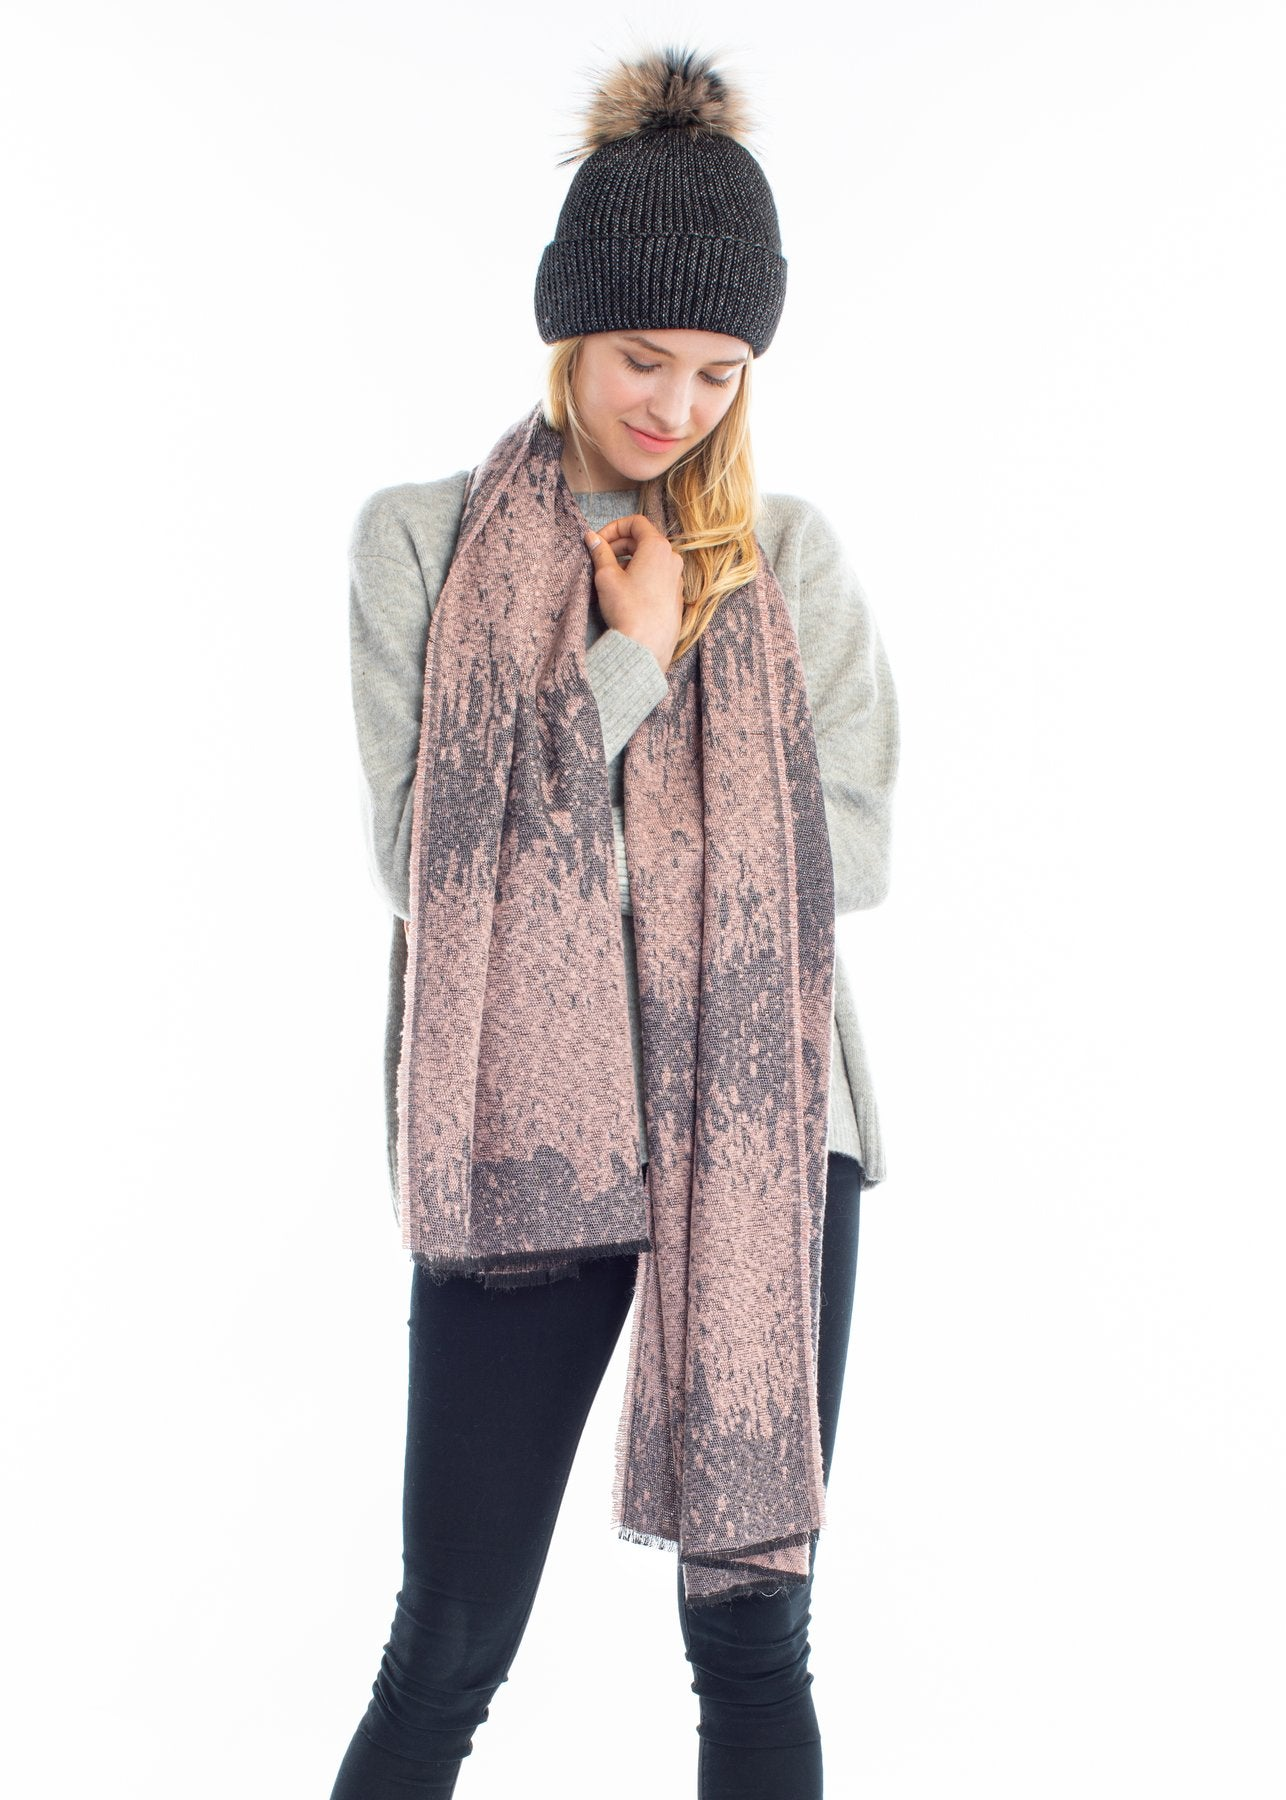 Sparkled Burn Out Scarf in Blush